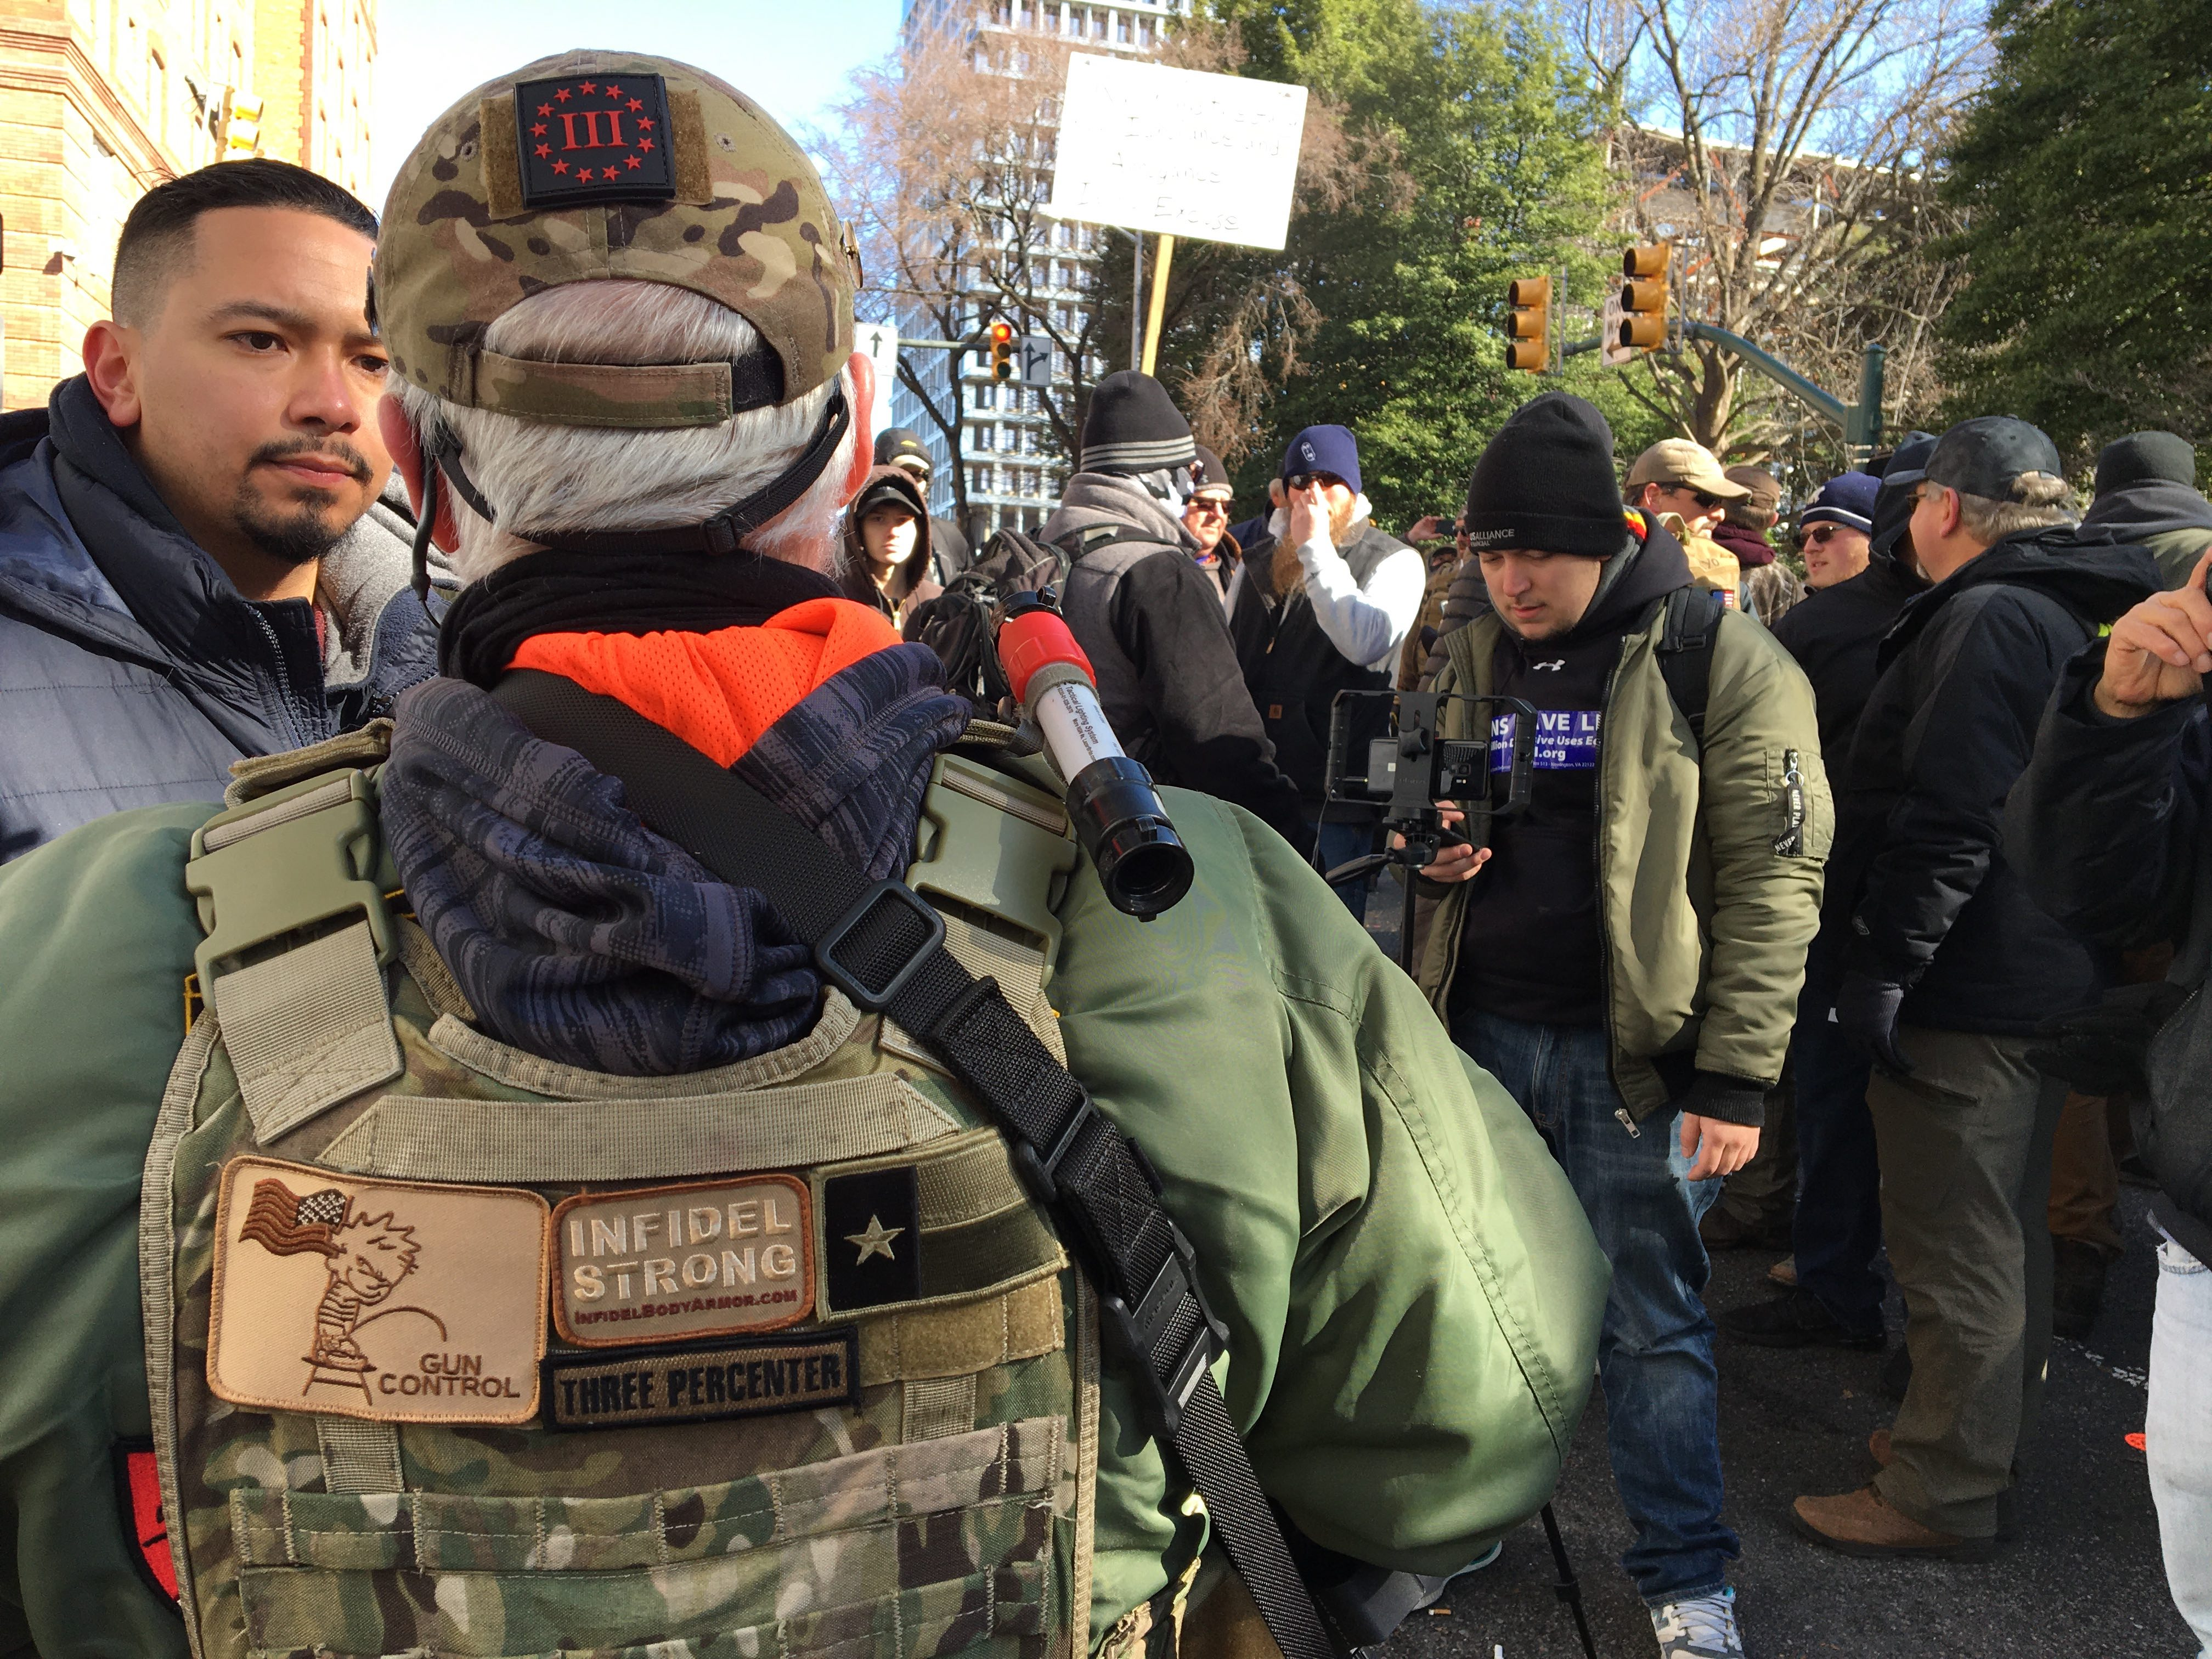 One protester in military garb wears patches with far-right III Percenter emblems on his vest and hat. (Sheren Khalel/MEE)